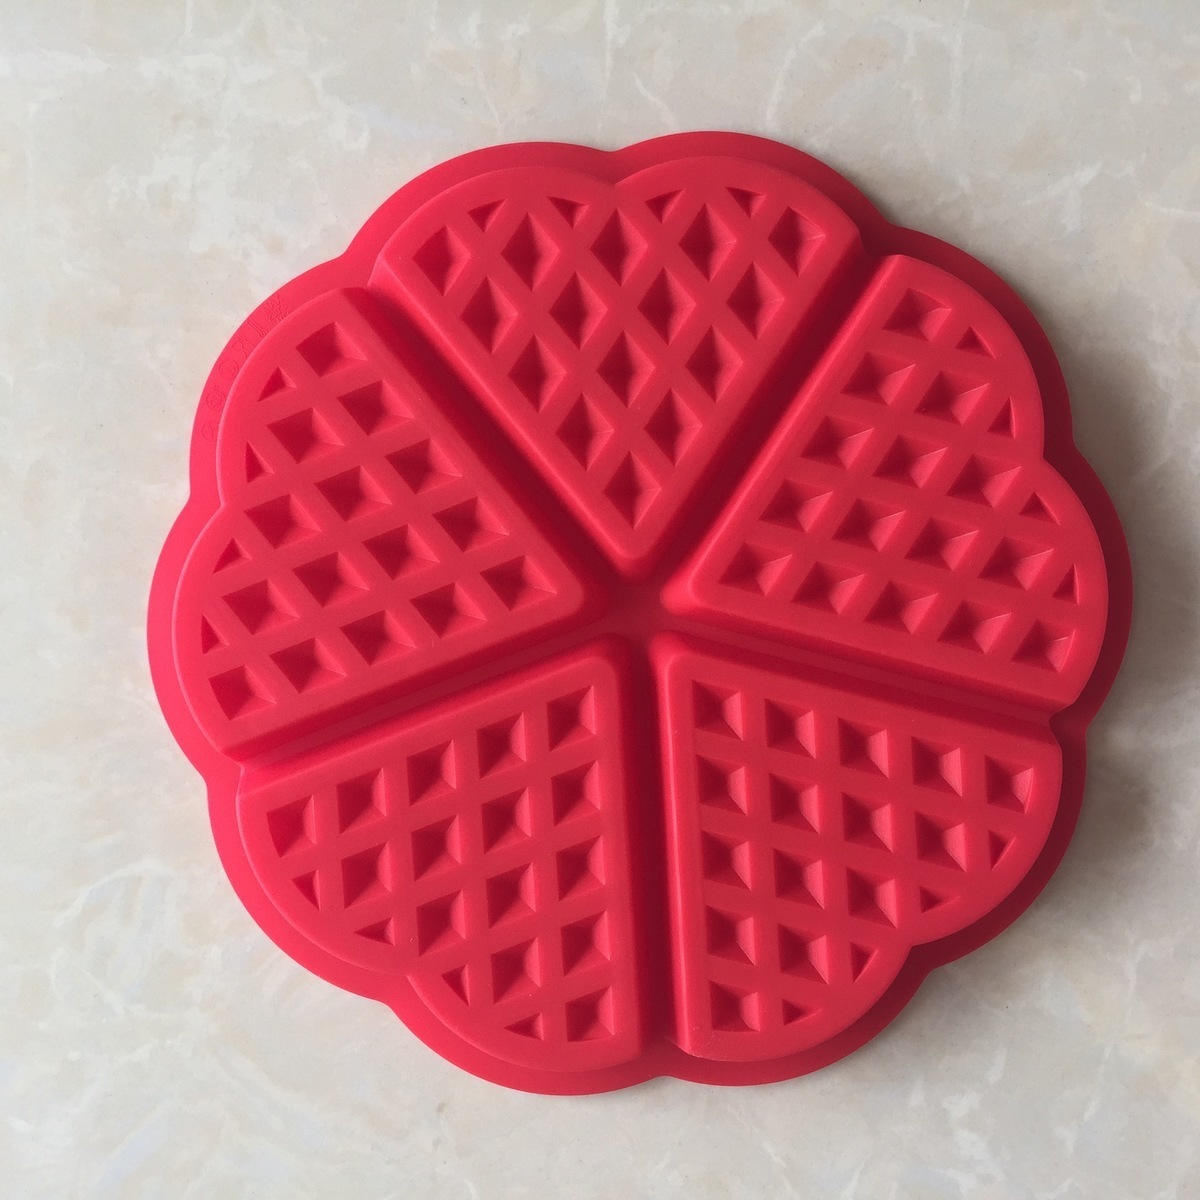 5 Heart-shaped Cake decorating tools Molds Fondant Decoration Baking Silicone reposteria patisserie